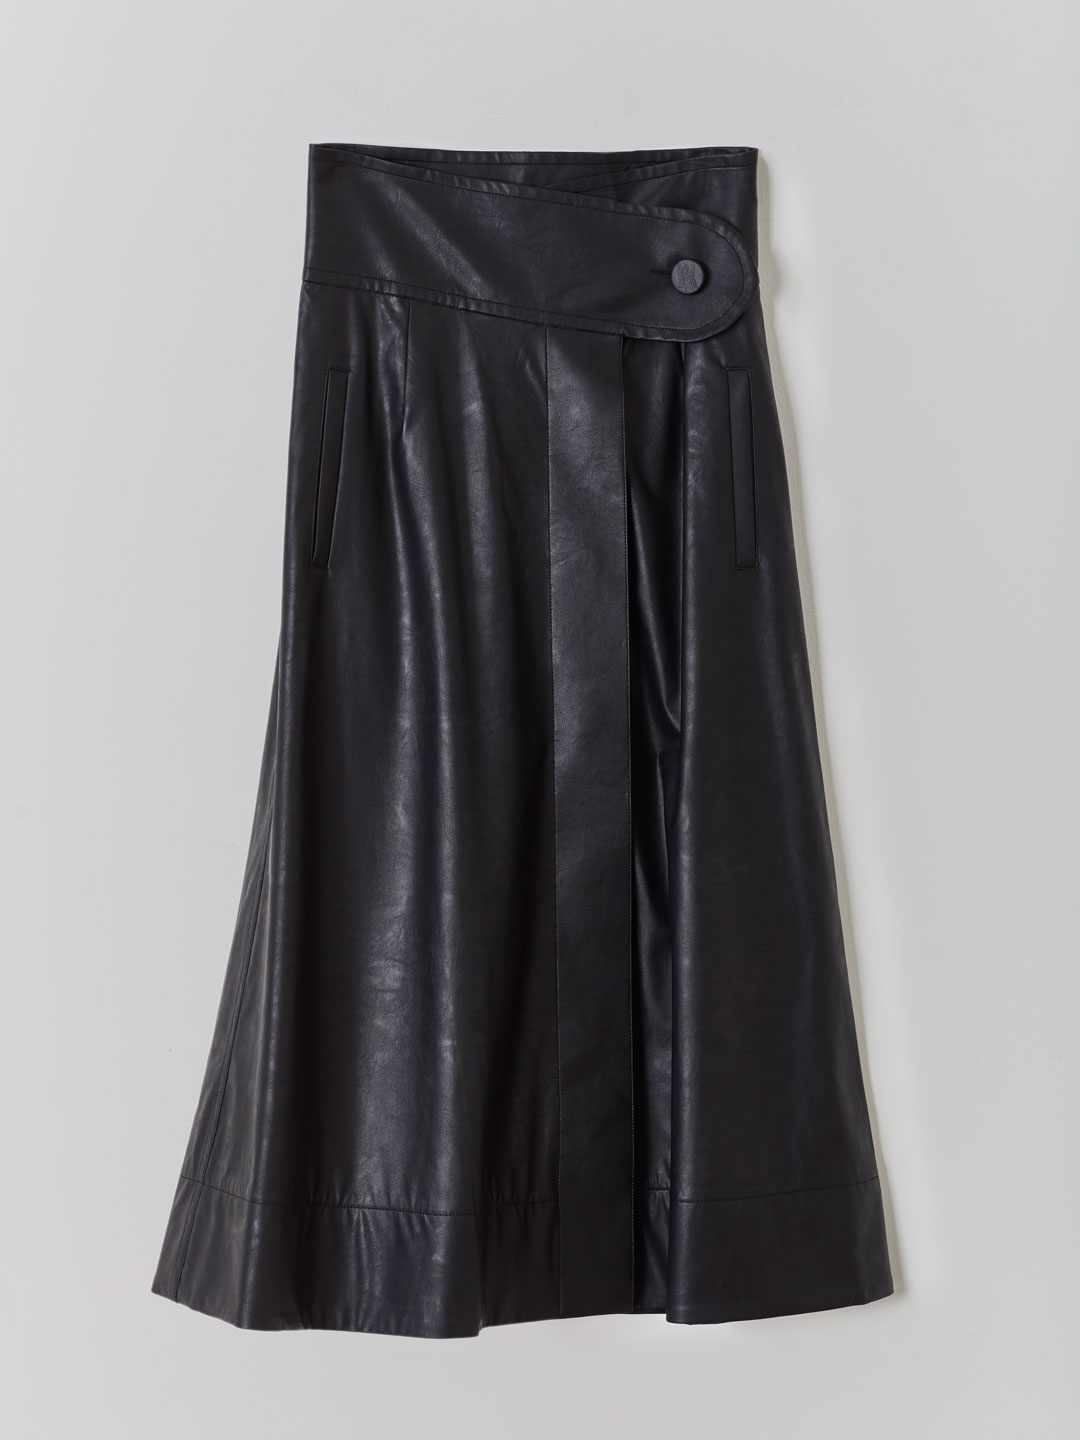 High Waisted Skirt  - Black